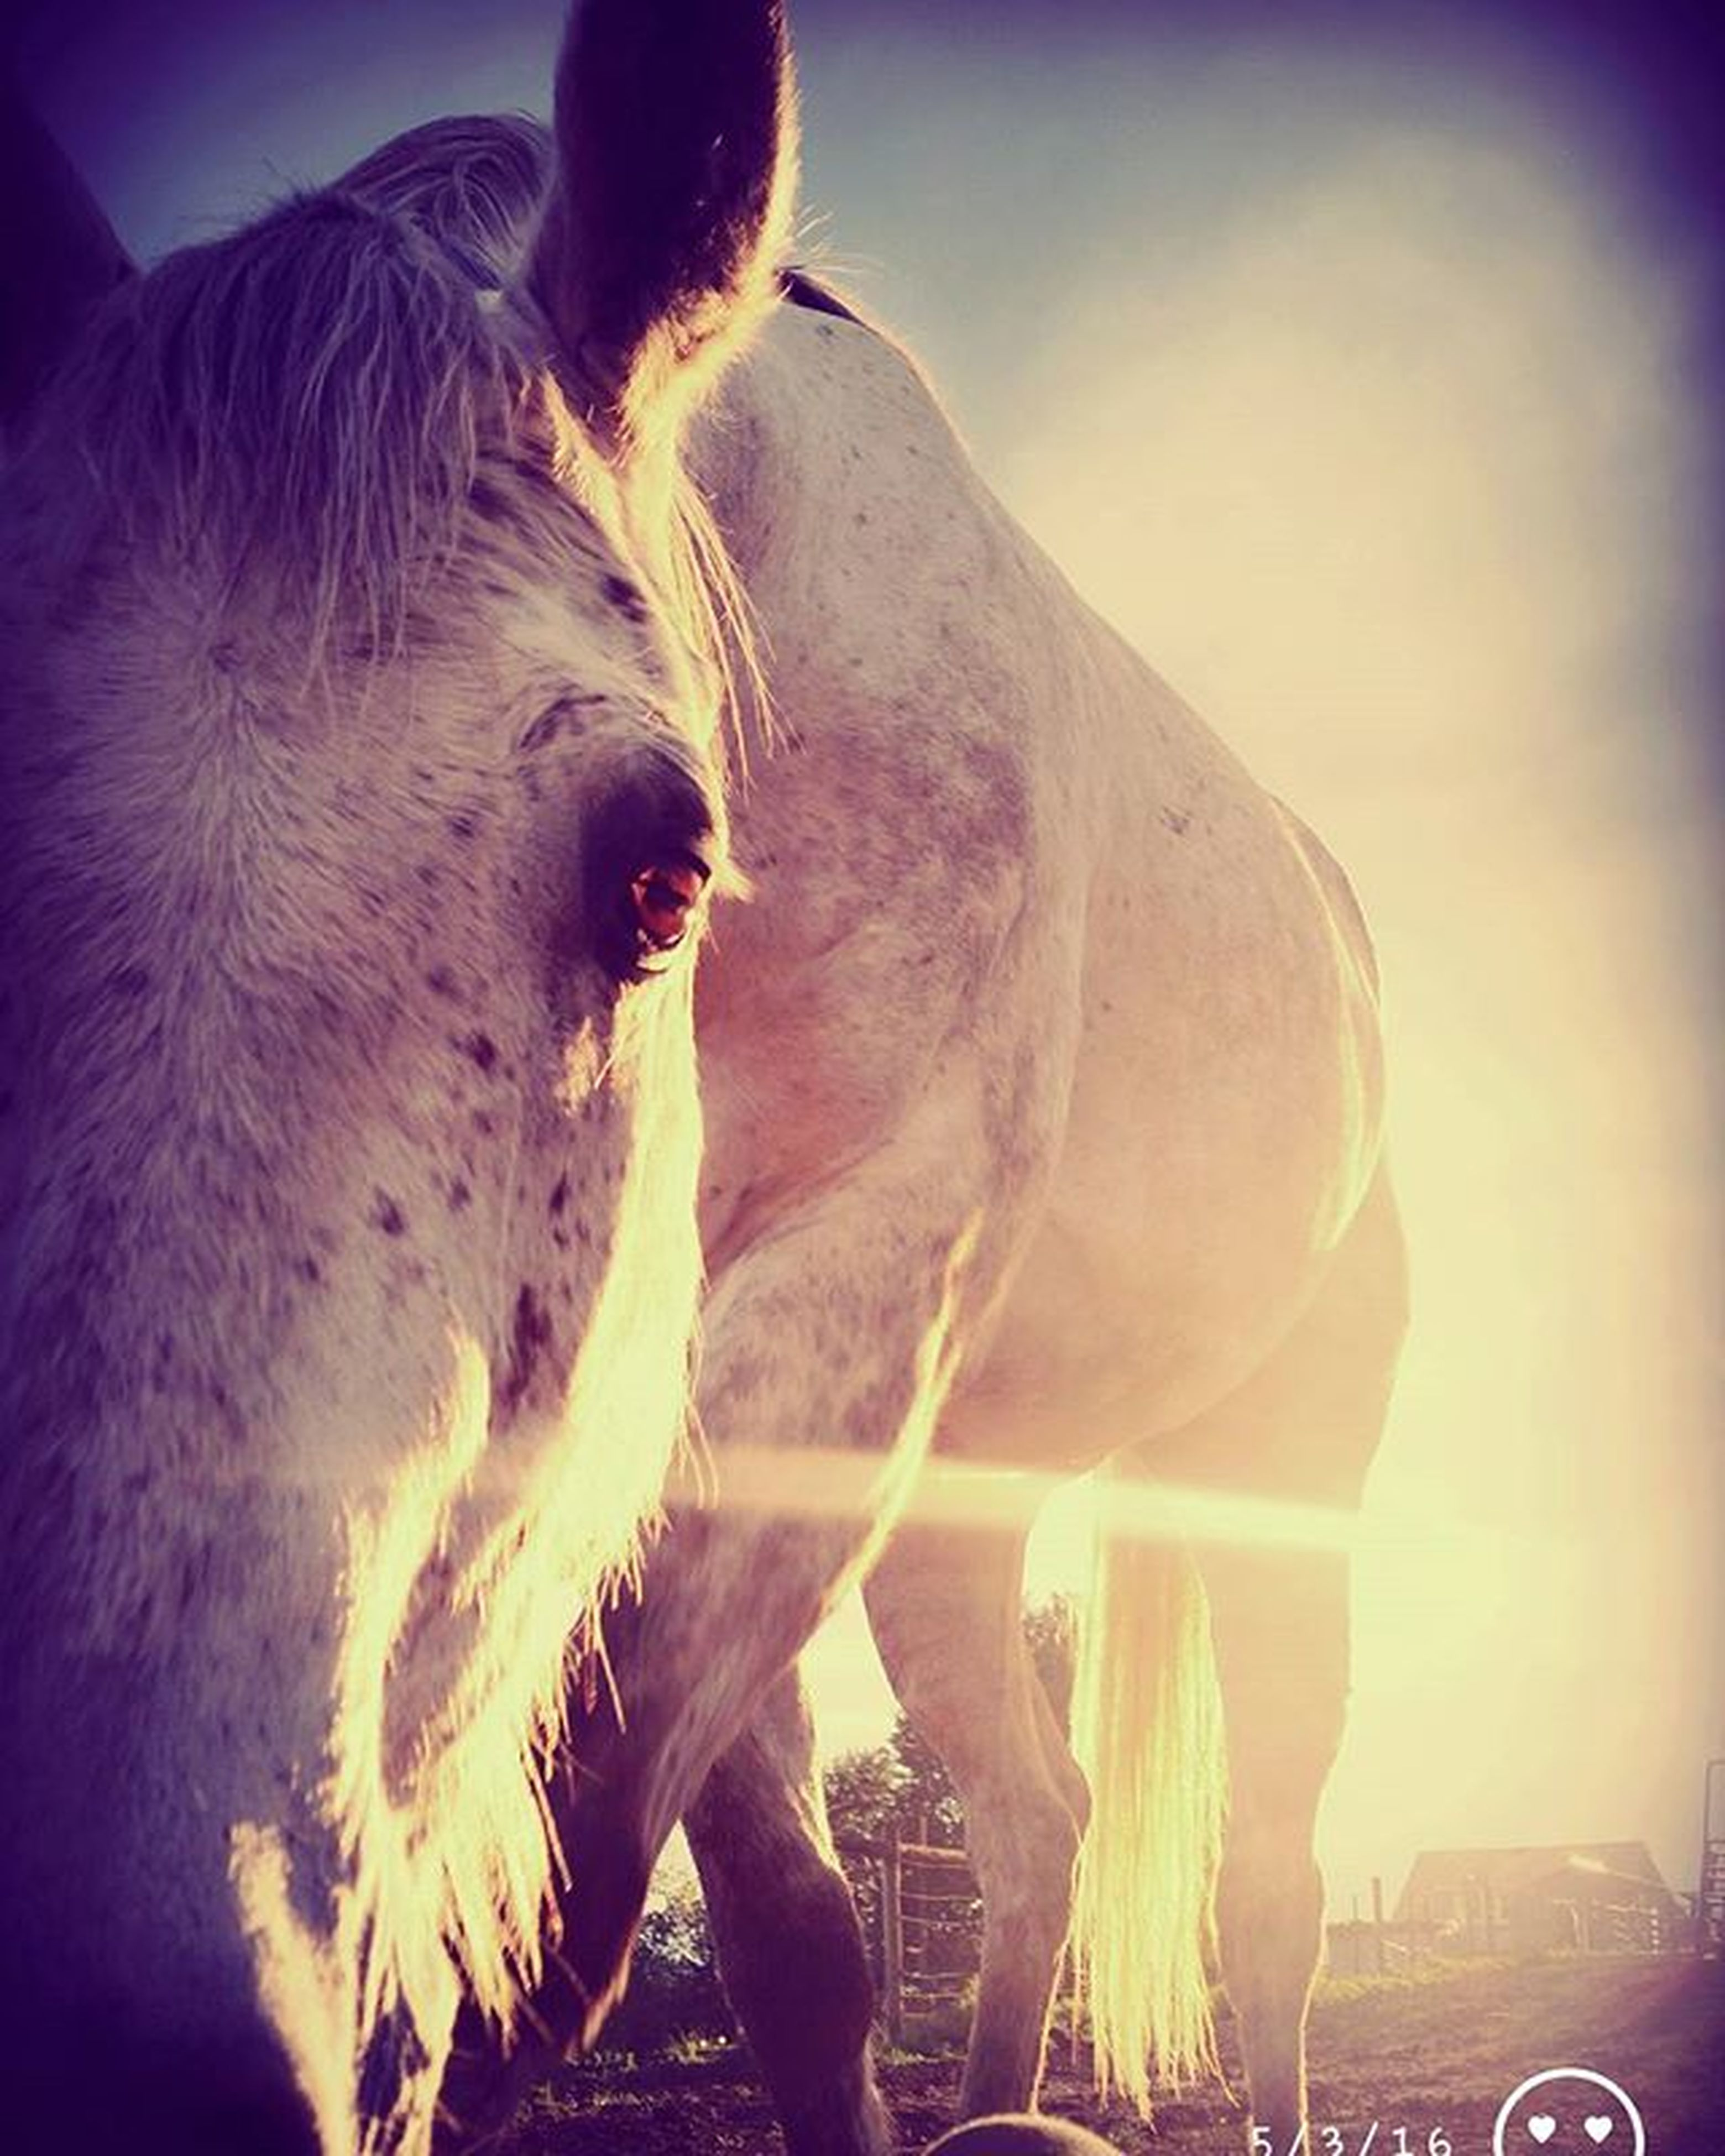 animal themes, one animal, horse, livestock, domestic animals, mammal, sunlight, close-up, outdoors, animal head, sunbeam, standing, sun, side view, working animal, animals in the wild, day, nature, lens flare, no people